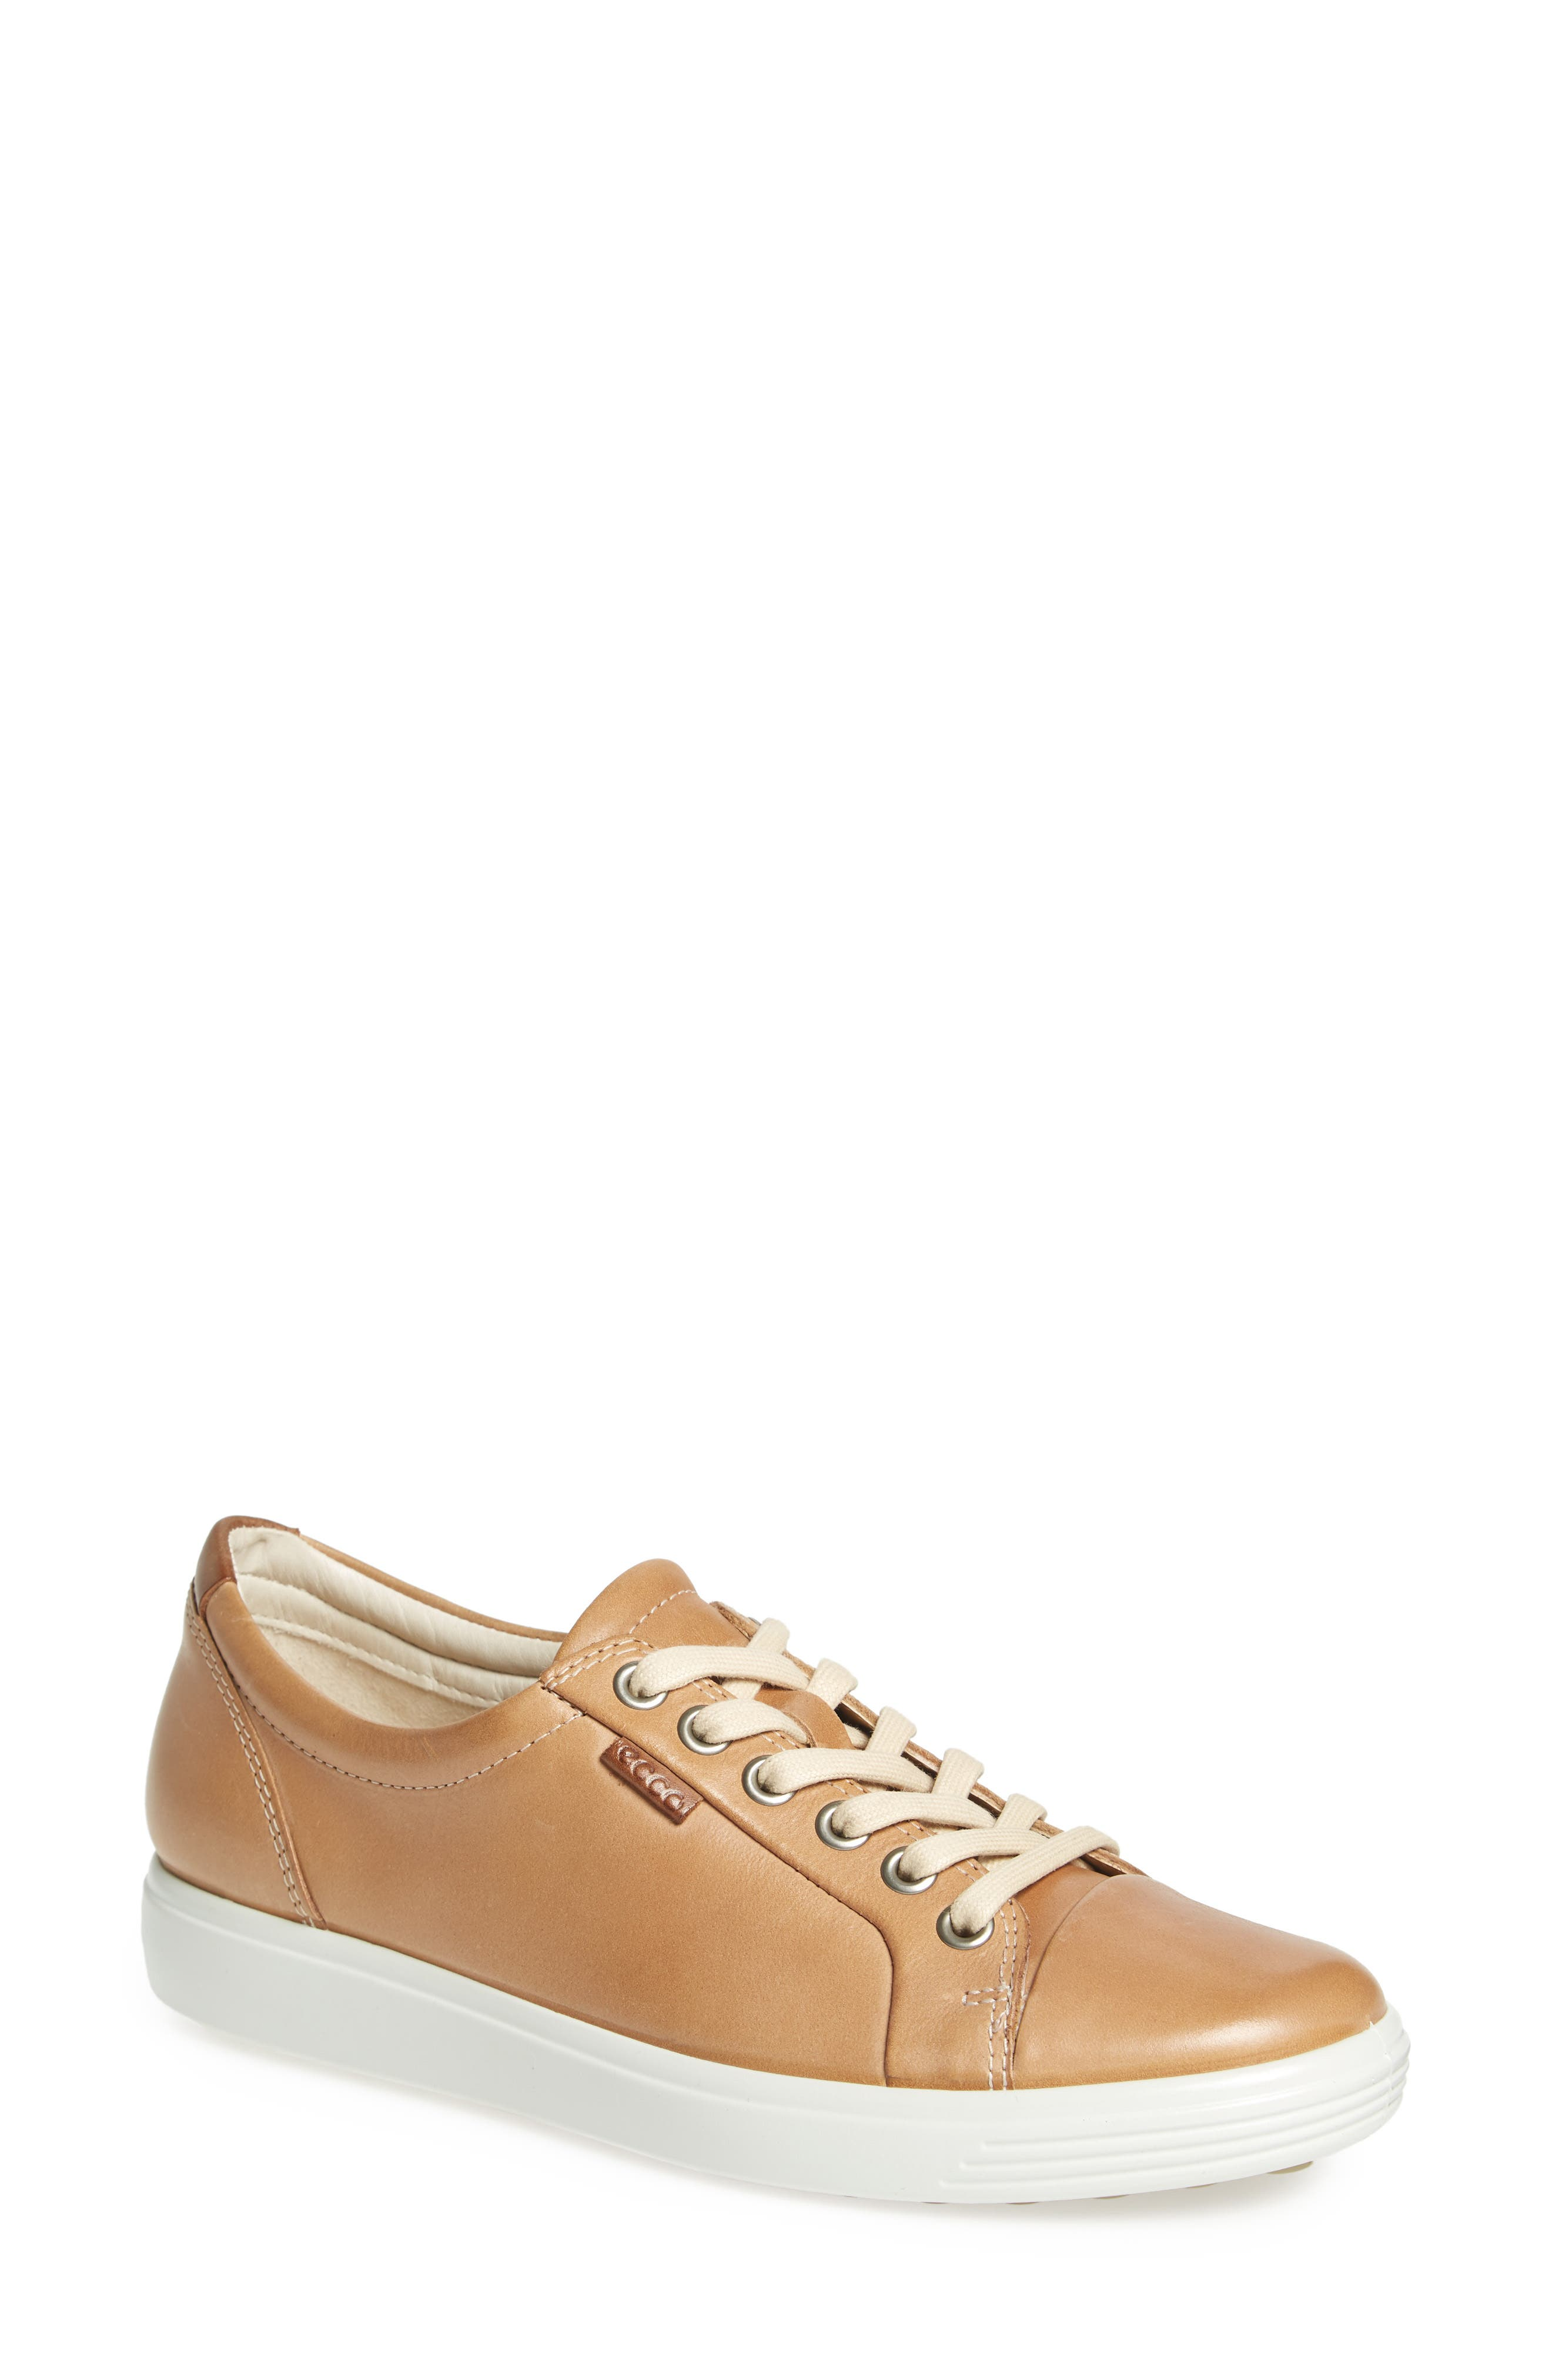 Soft 7 Sneaker,                         Main,                         color, POWDER LEATHER